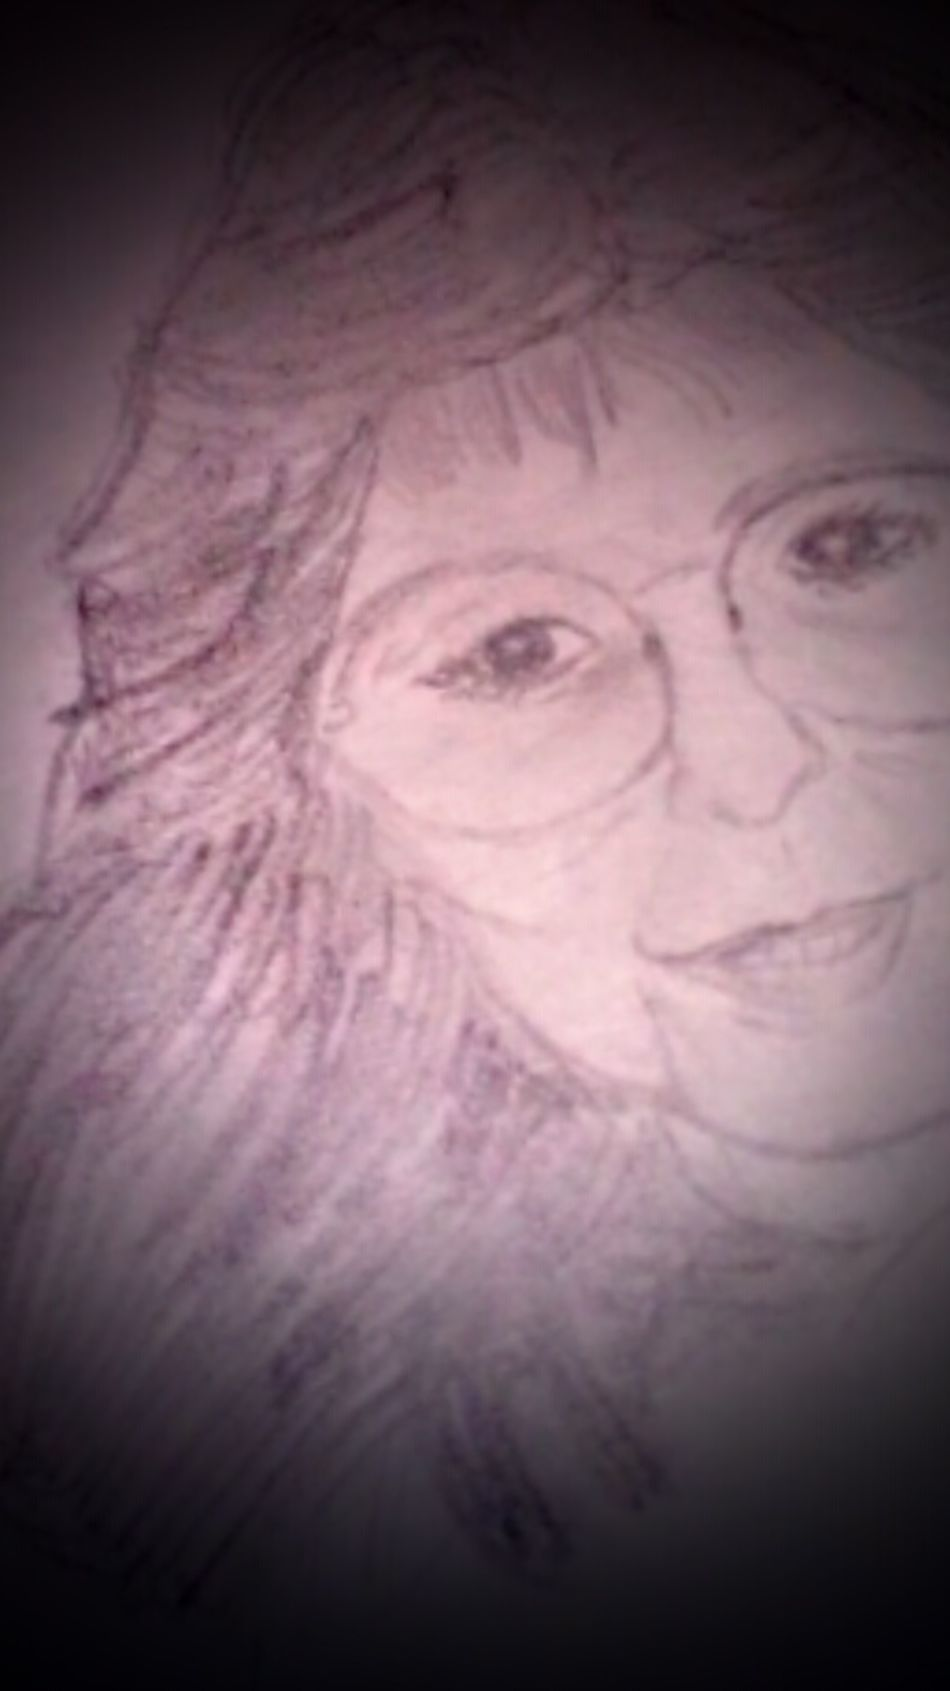 Paper View Self Portrait Drawings That's Me Black & White How I See Me Pencil Drawing Hello World Hi! Enjoying Life Cheese! My Drawings Drawings By Jeanette Welcome To Black